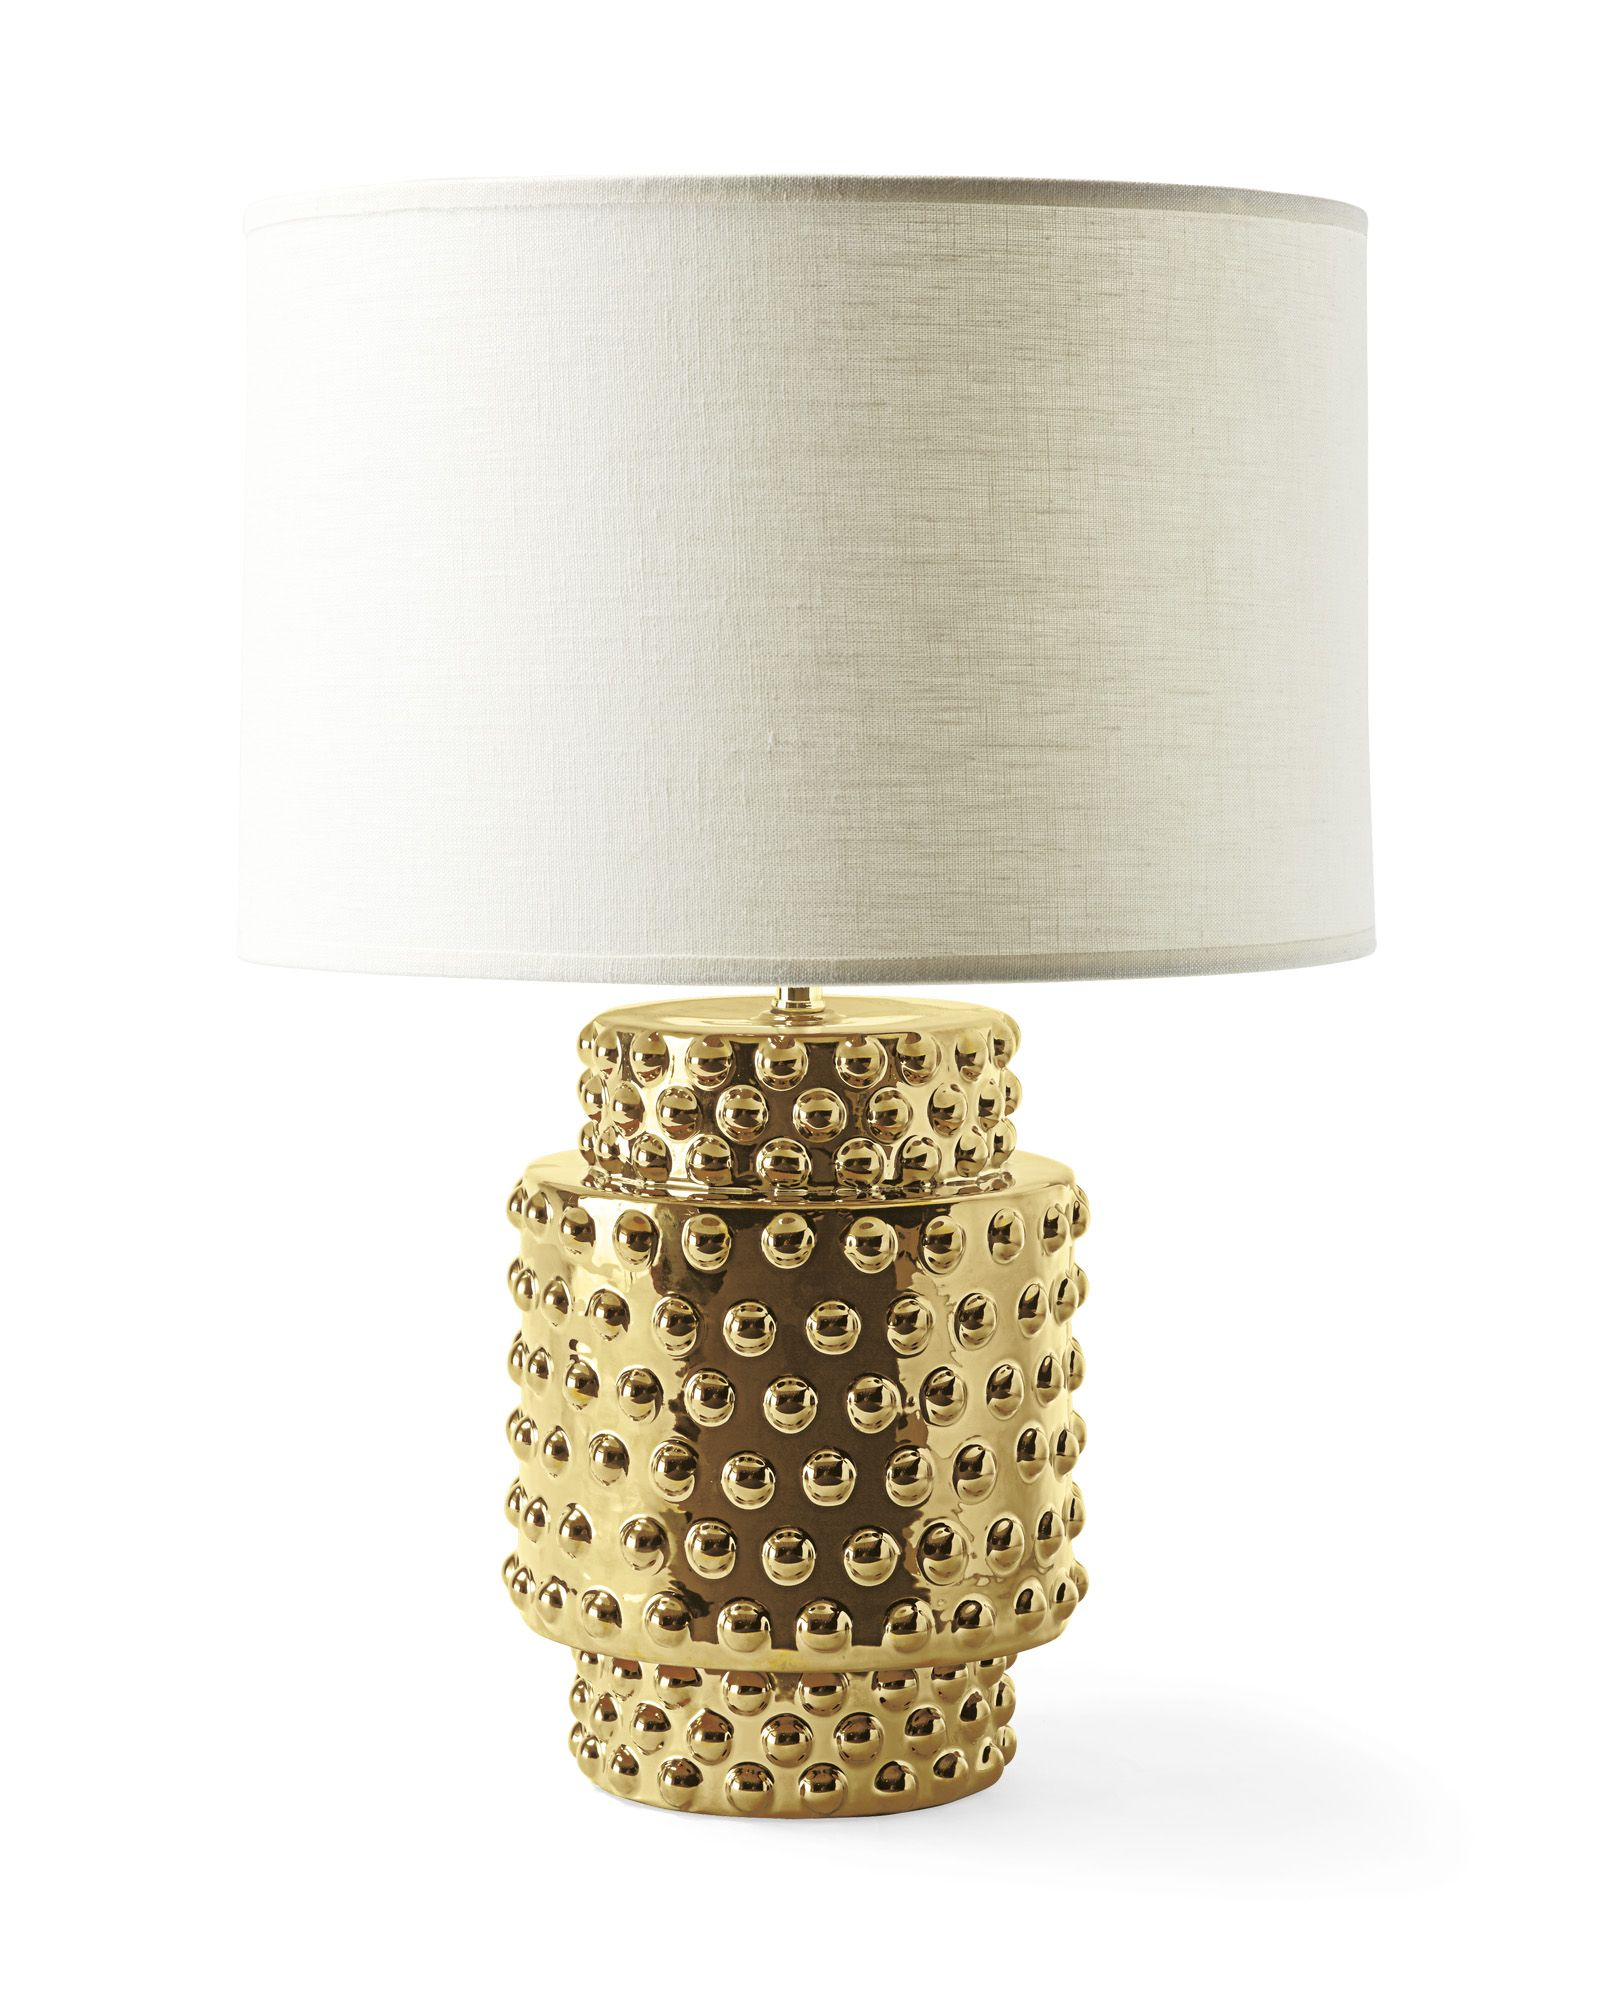 Sculptural and striking, this is as glam as it gets. The ceramic ...